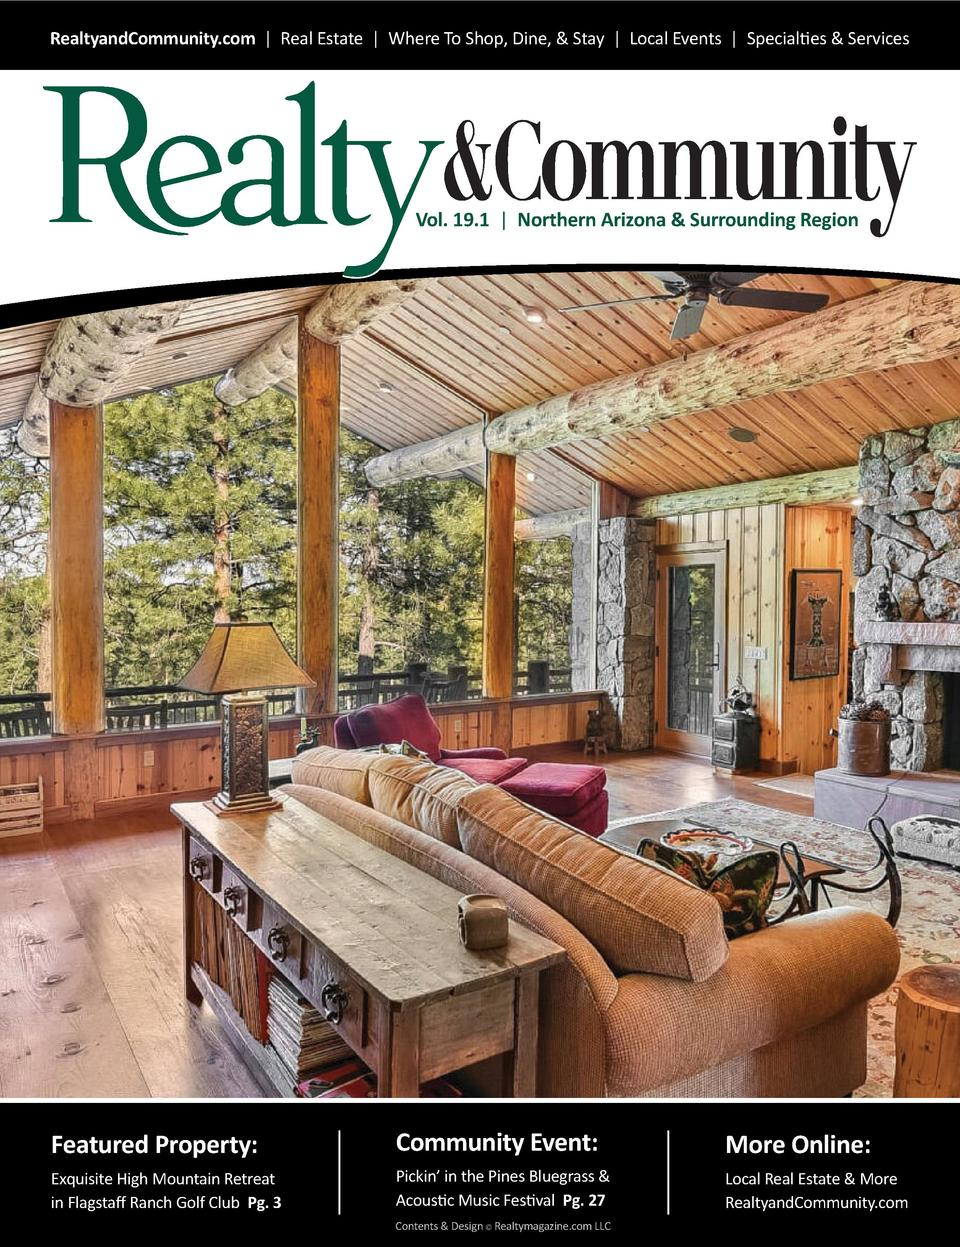 RealtyandCommunity.com   Real Estate   Where To Shop, Dine,   Stay   Local Events   Specialties   Services  Vol. 19.1   No...